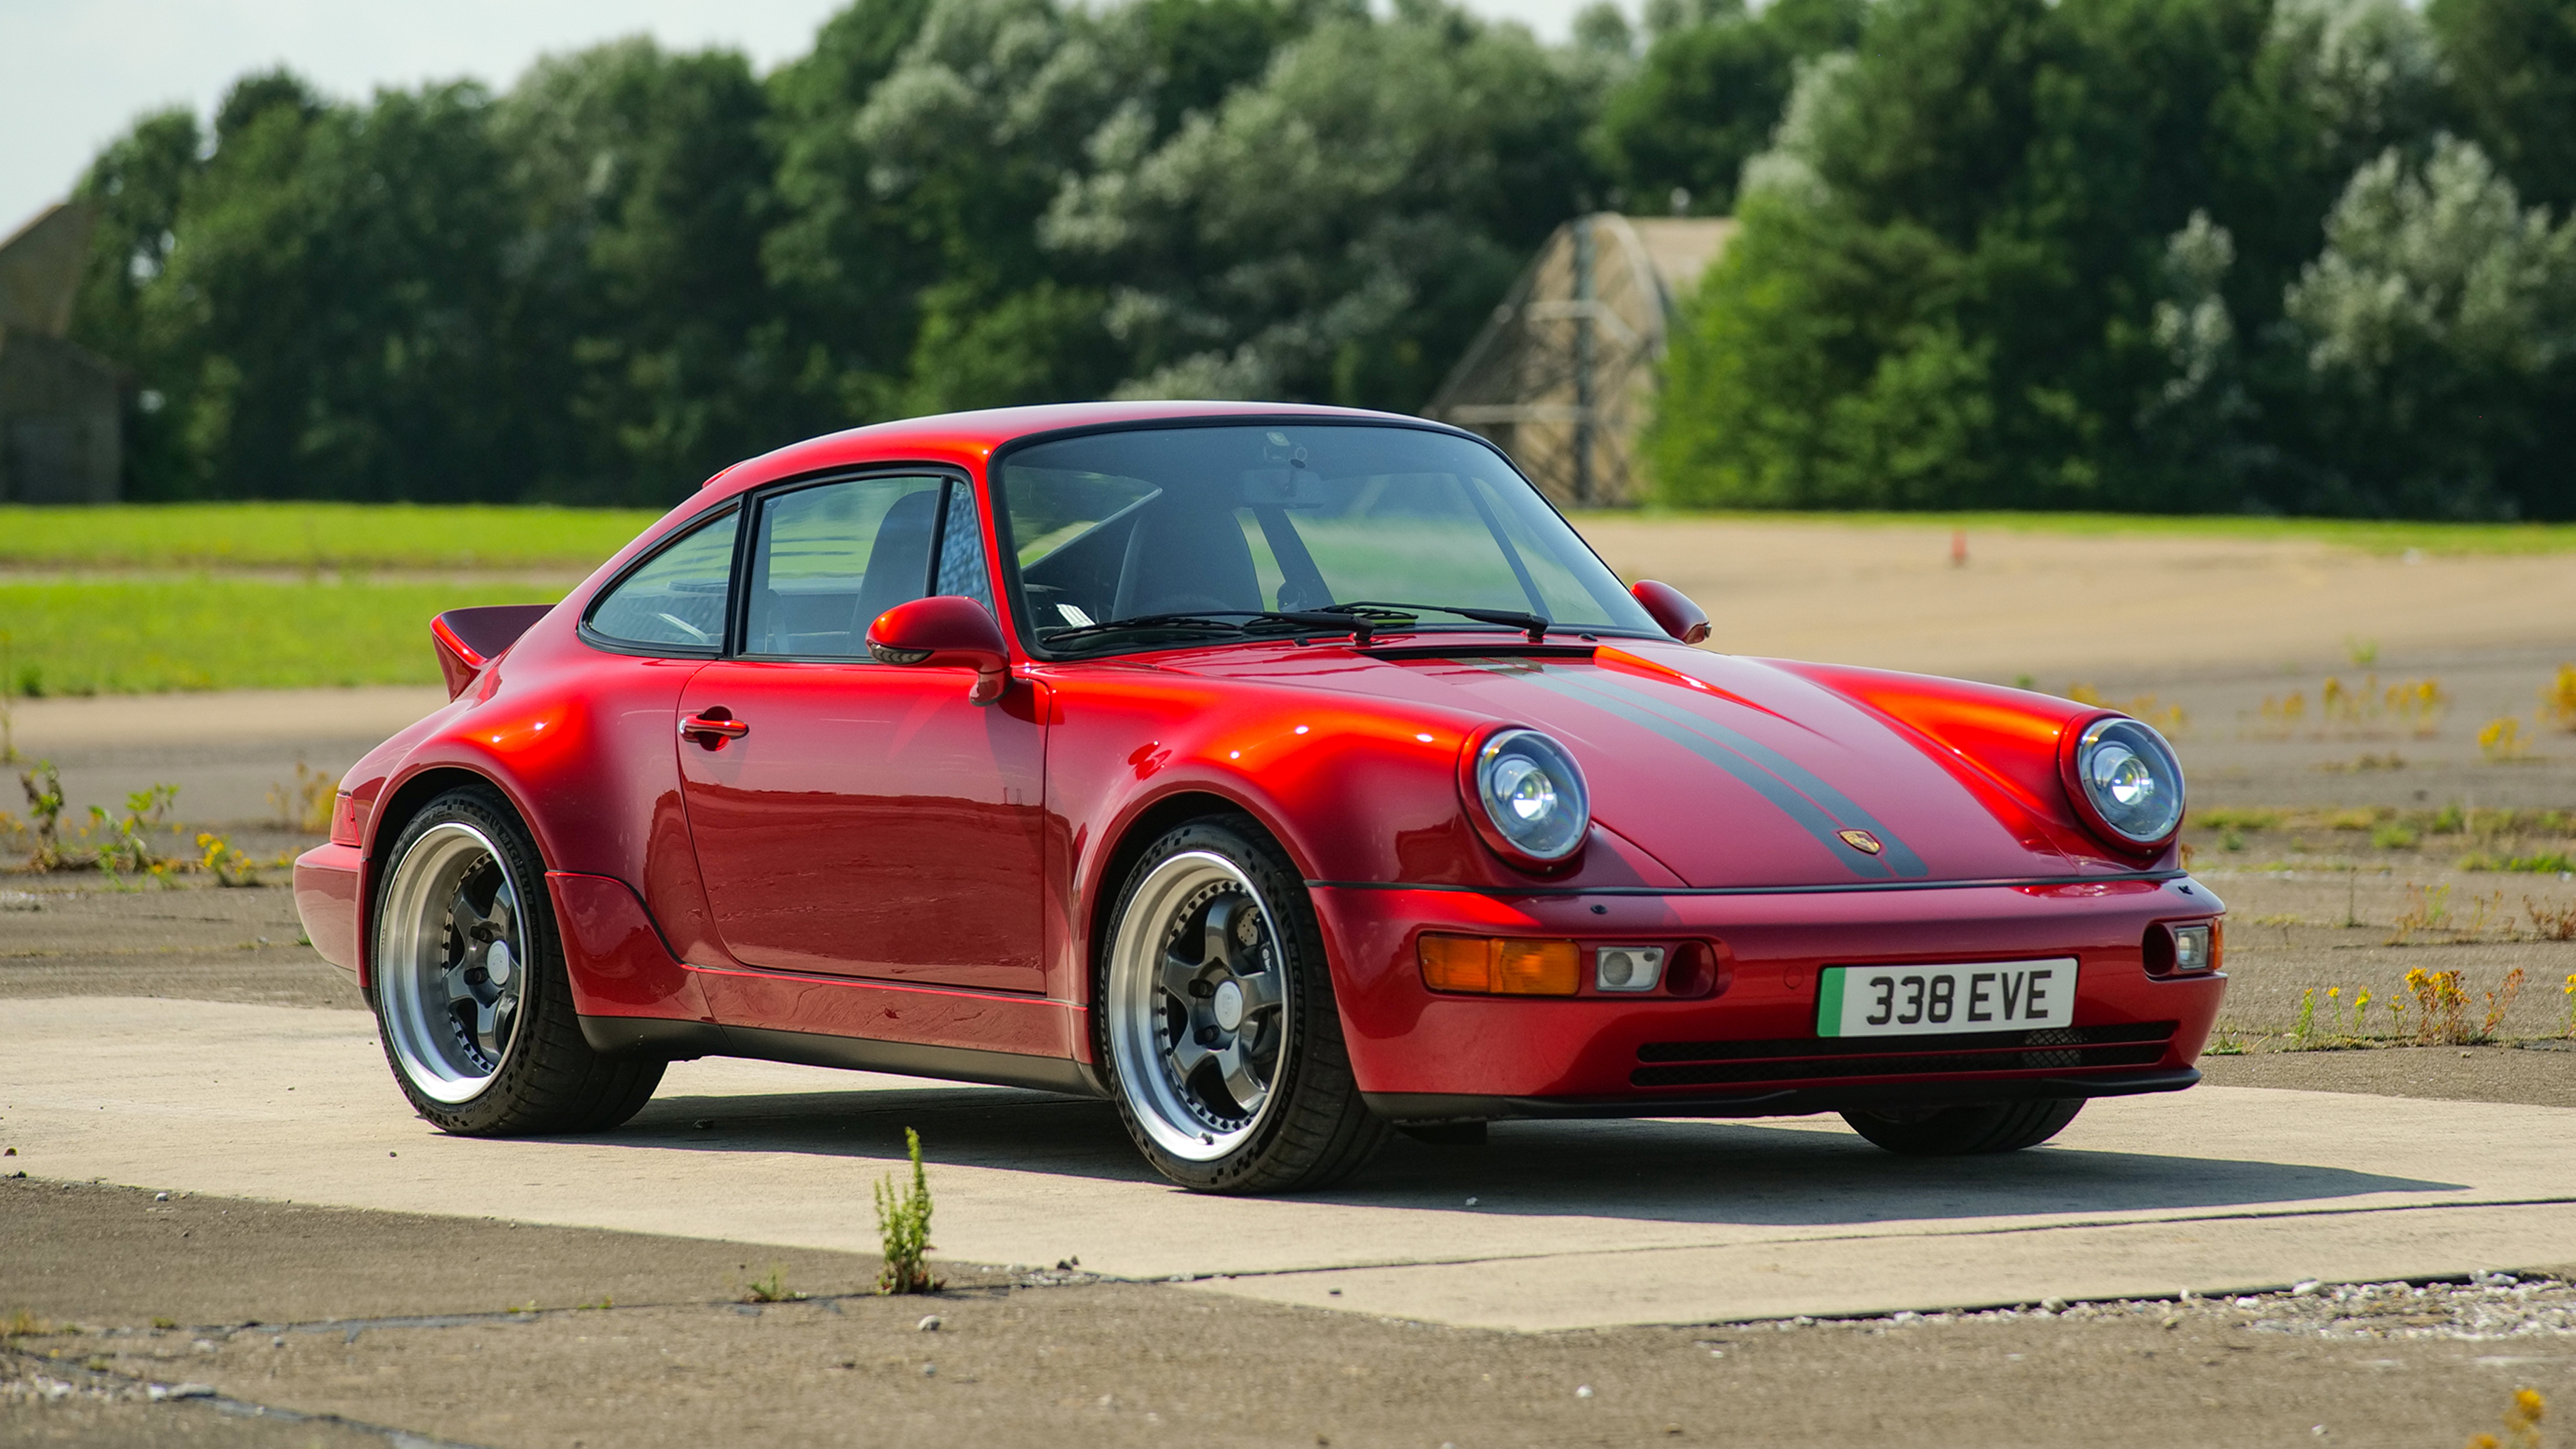 Video: This classic Porsche 911 is fully electric